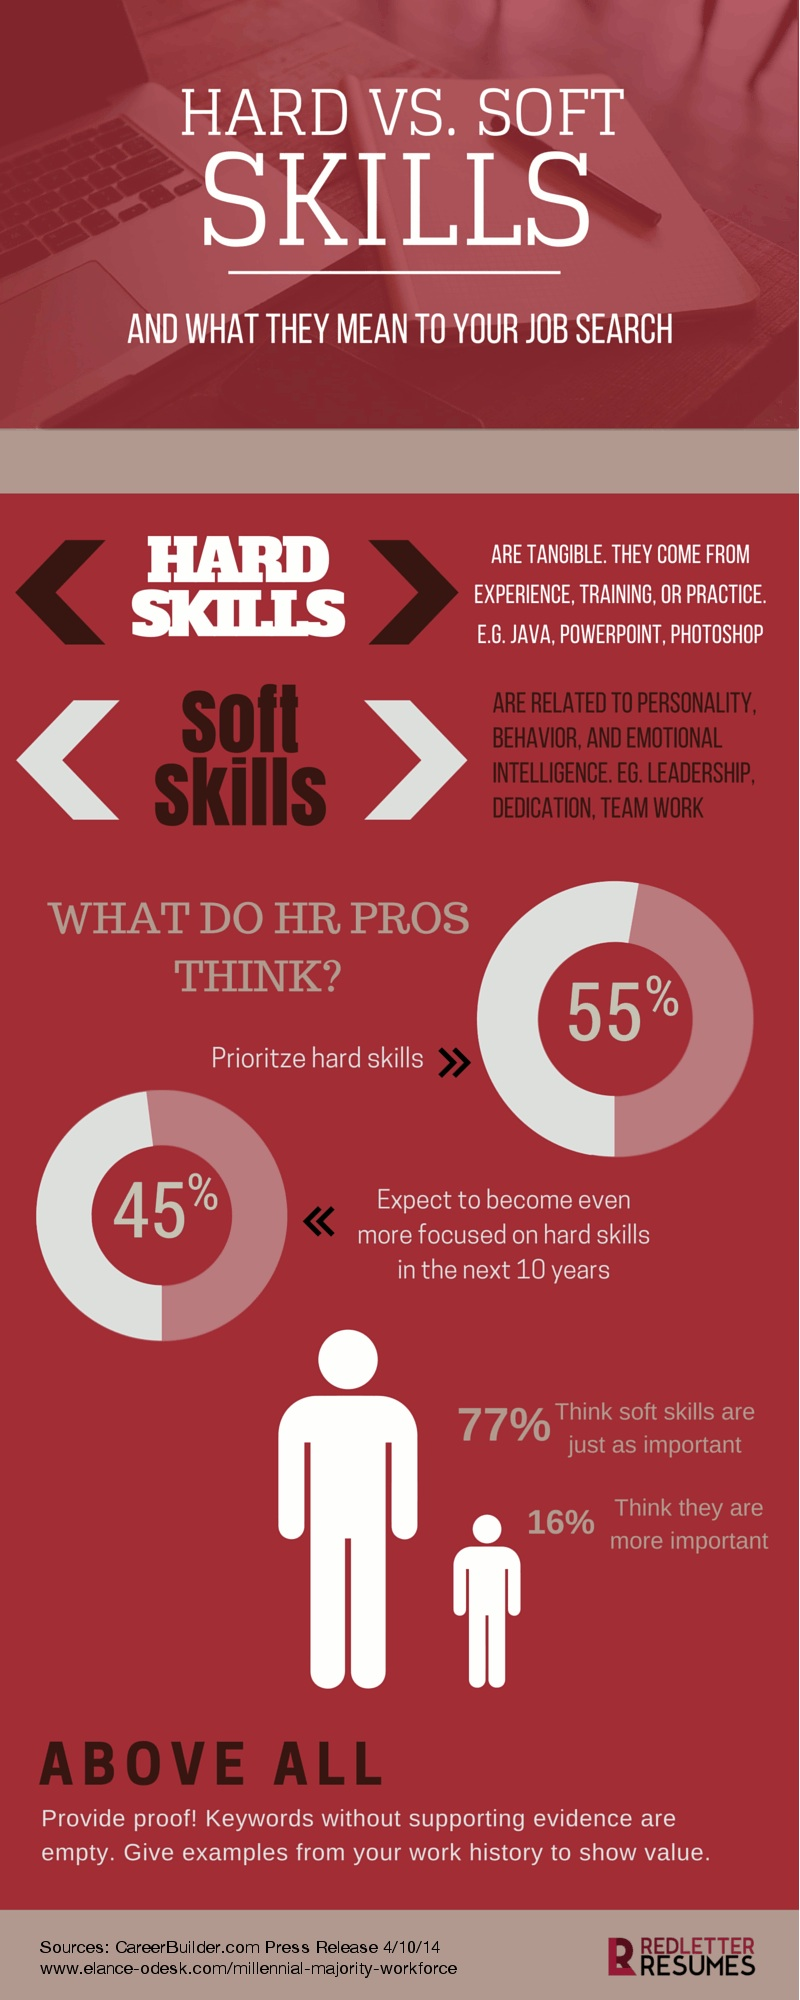 hard skills vs soft skills what they mean to your job search and 2015 10 20 1445379635 8151688 copyofinfographichardsoftskills2 jpg